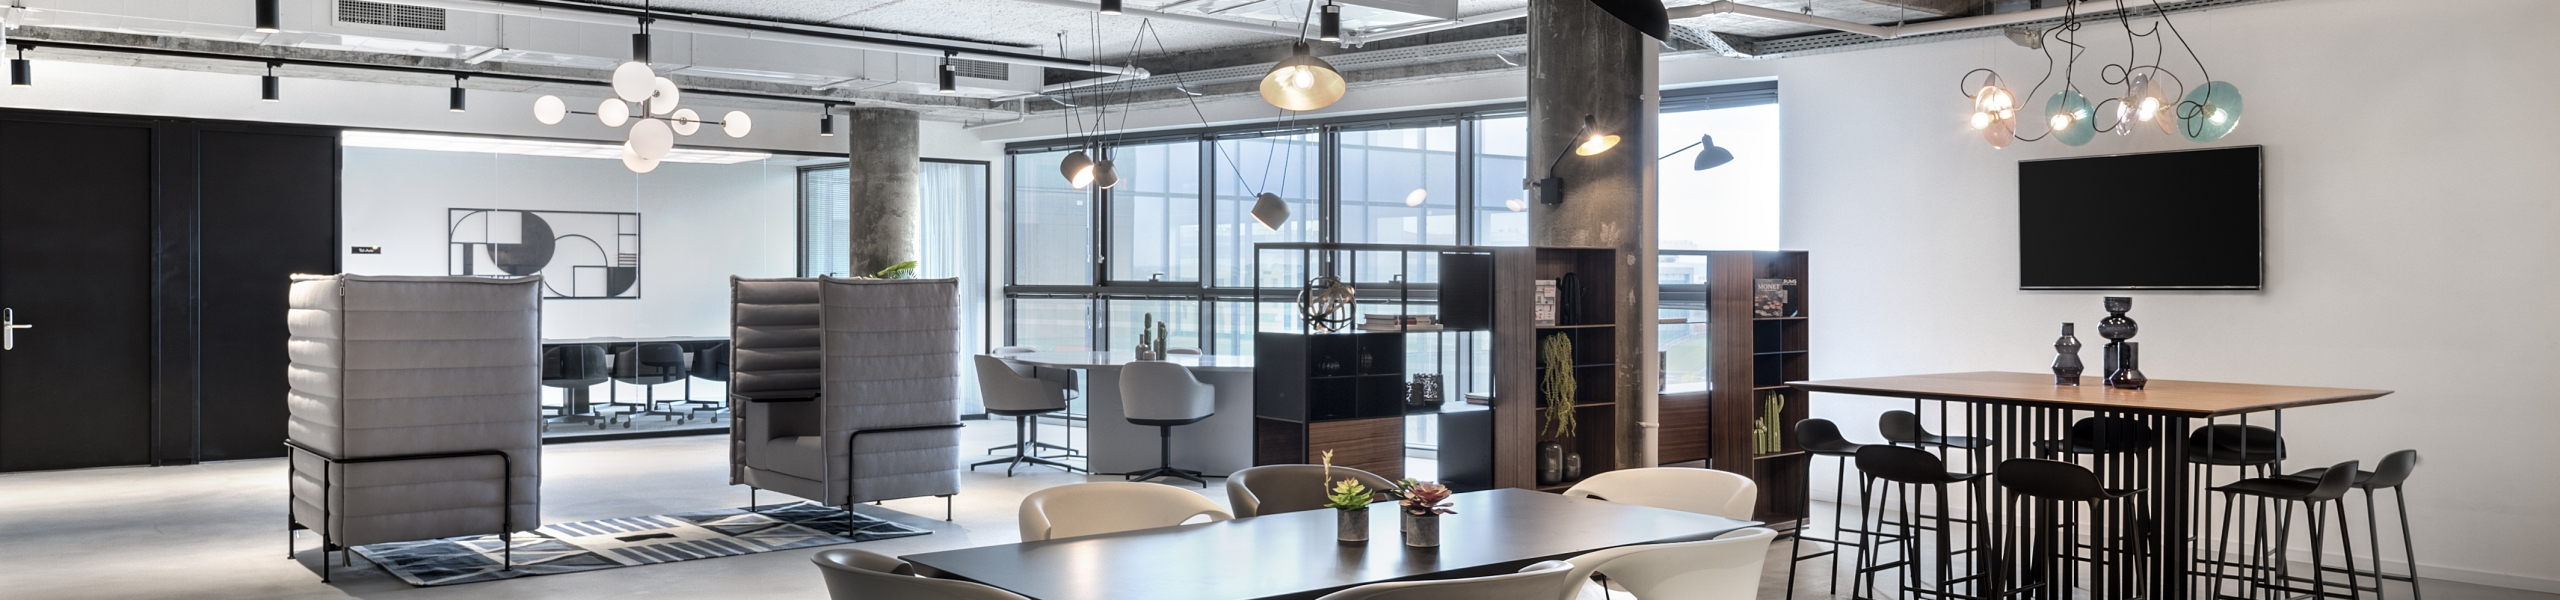 httpswww.spacenter.co .il ריגס אור יהודה Regus Or Yehuda 1